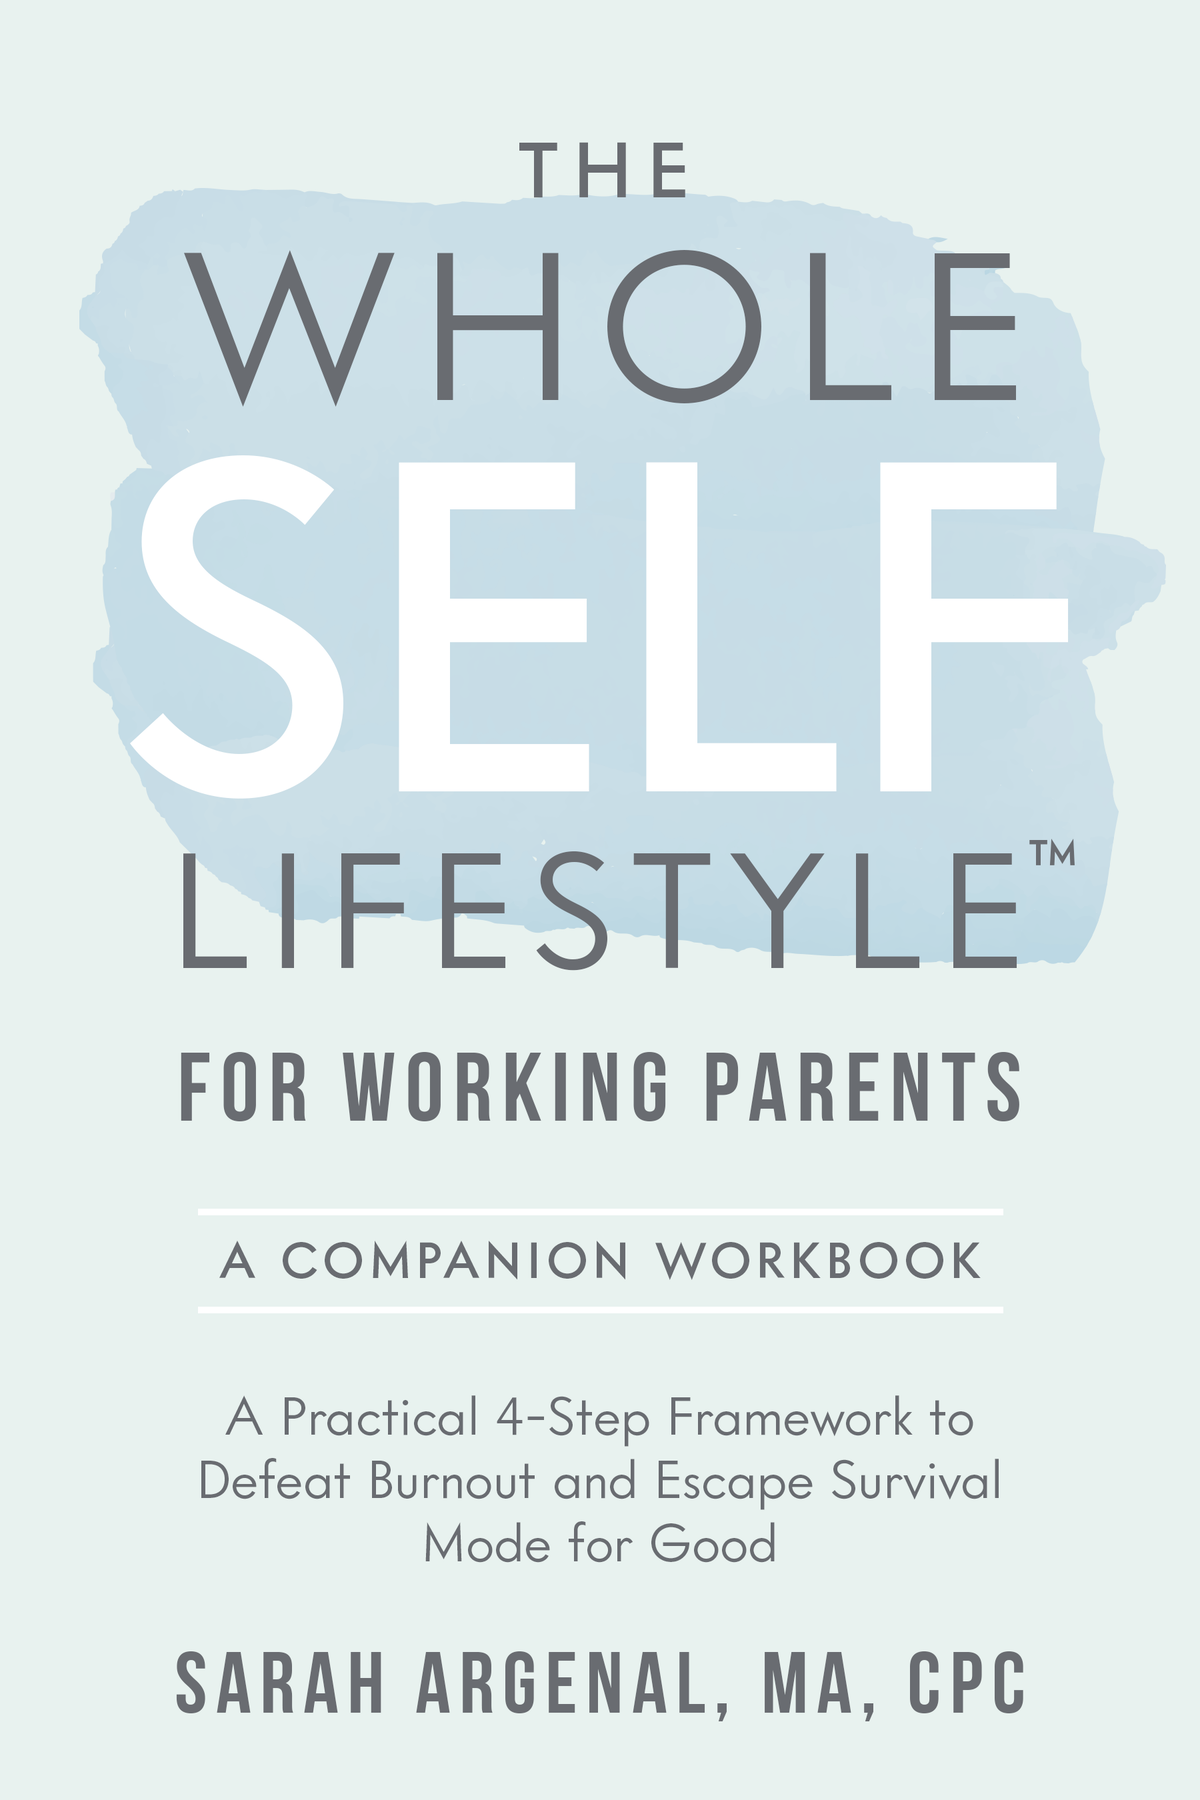 The Whole SELF Lifestyle for Working Parents Workbook and other files